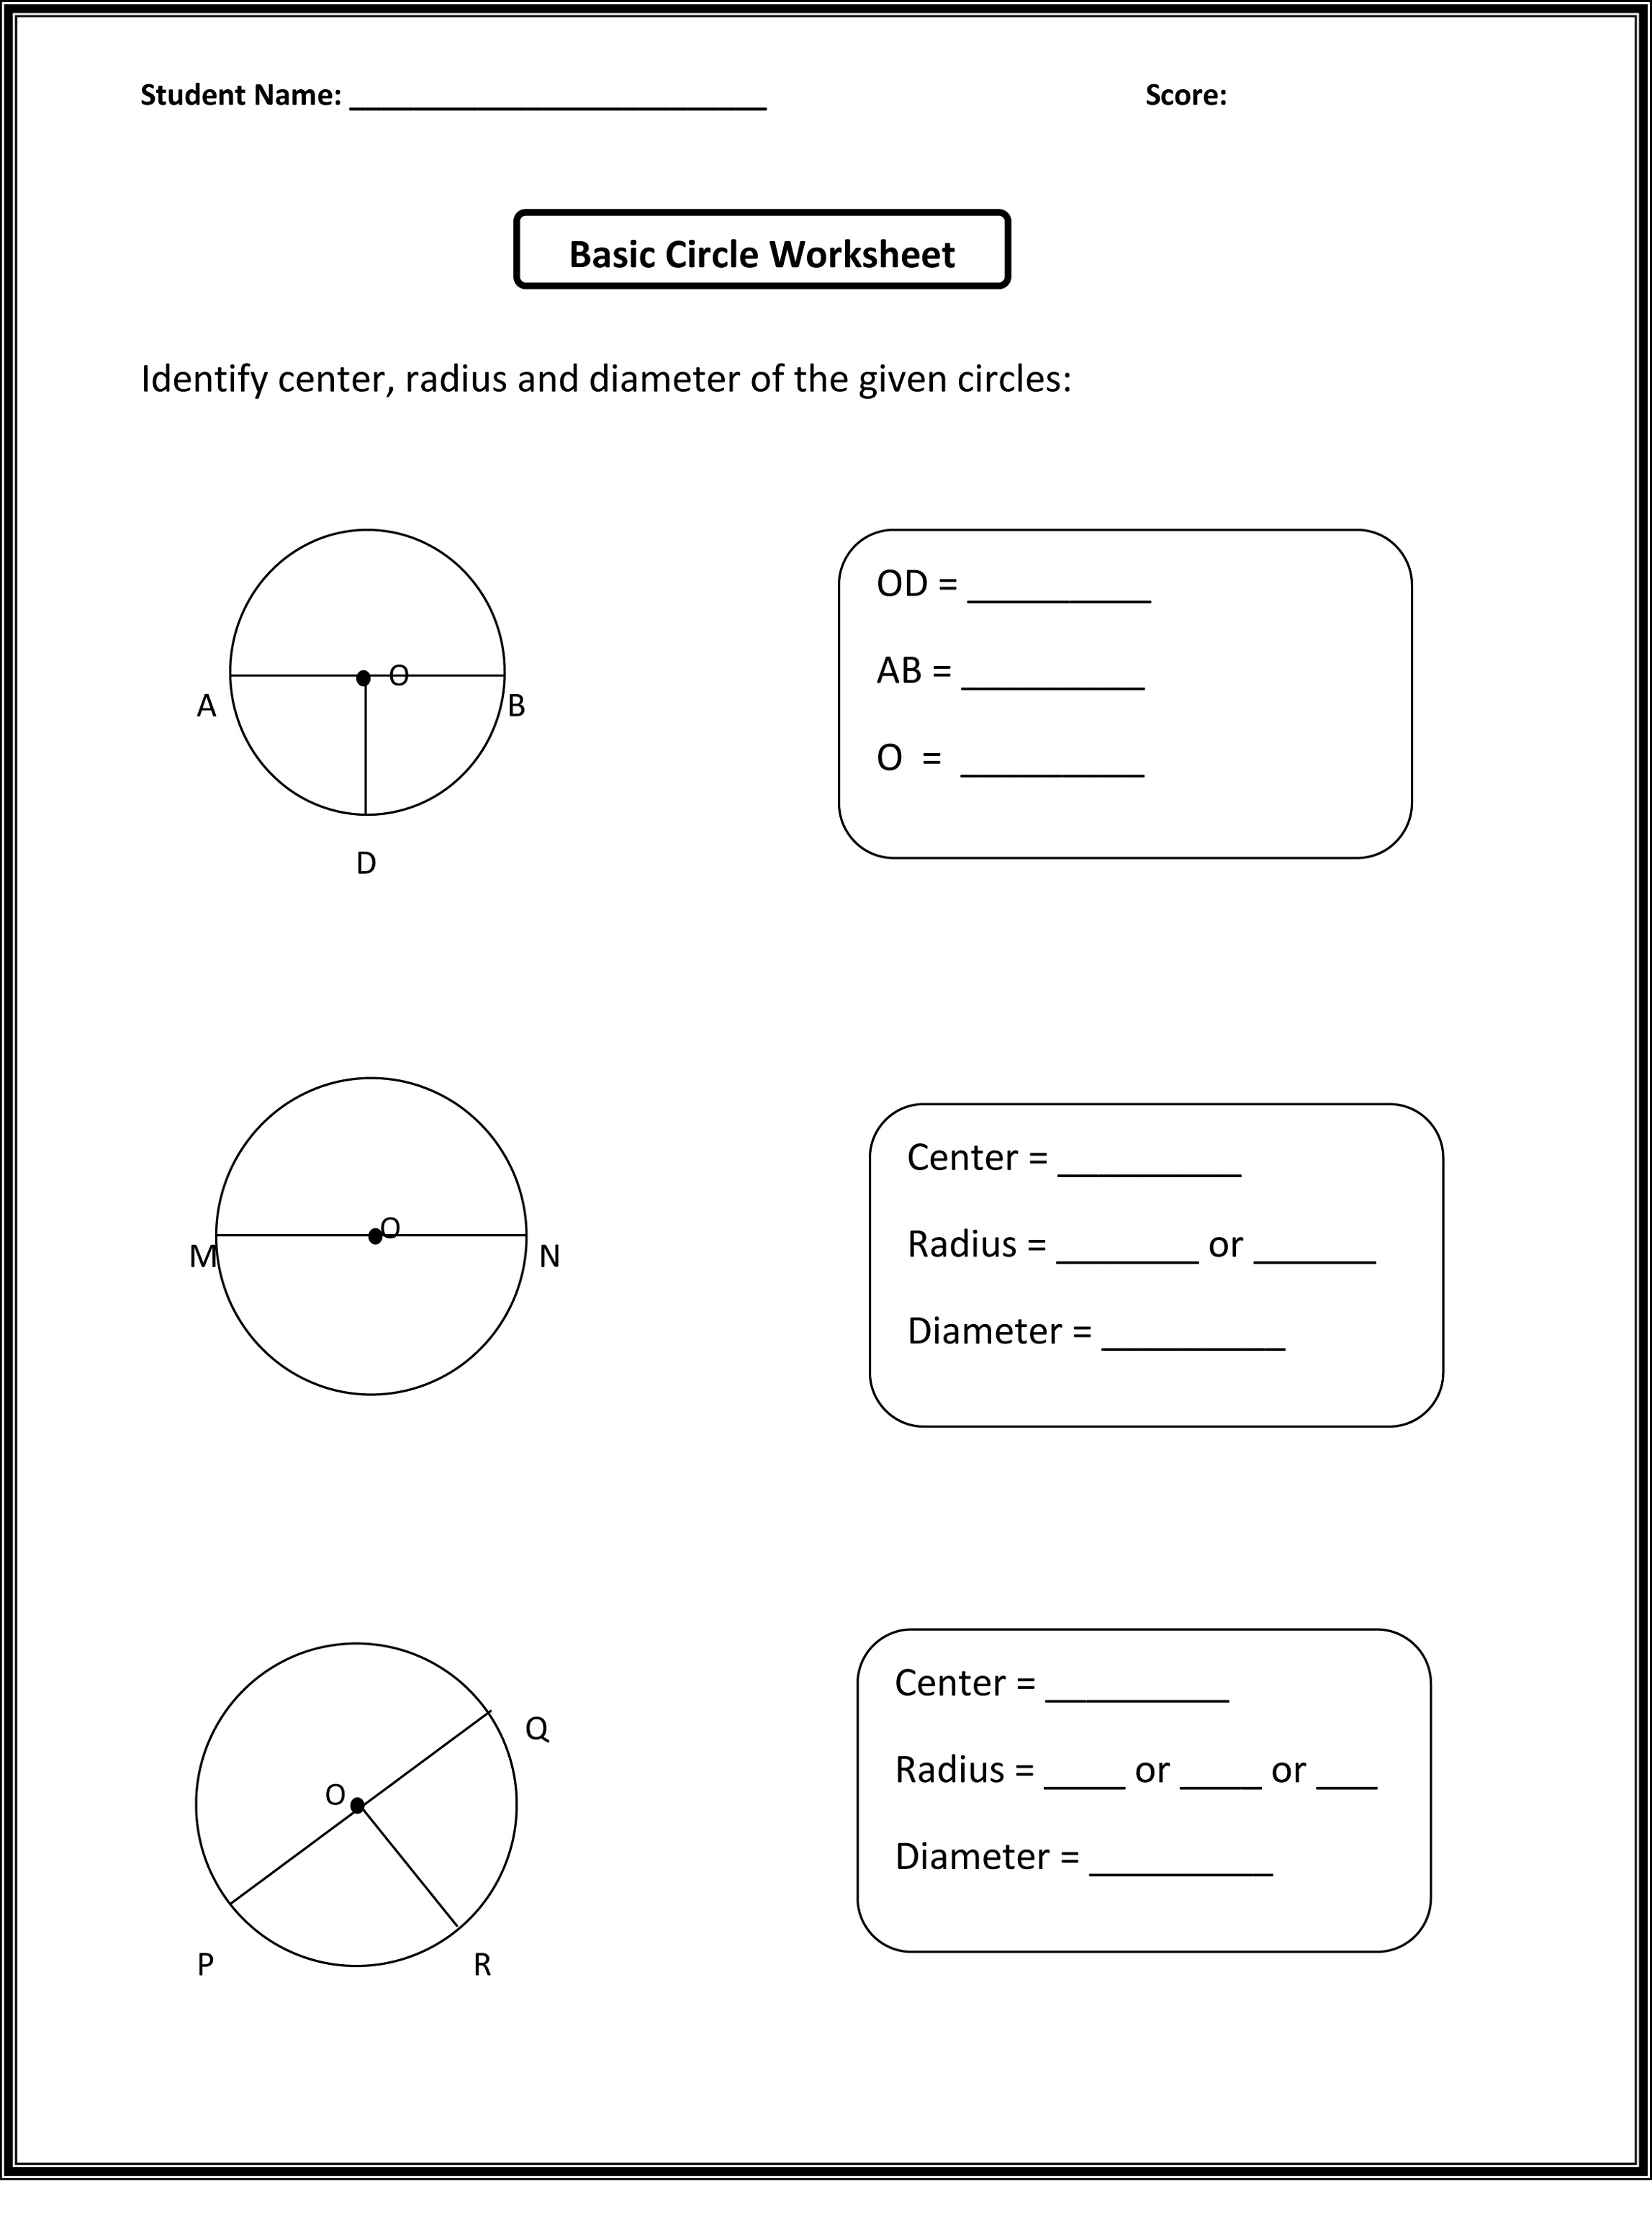 math worksheet : math worksheets images for kids  activity shelter : Search And Shade Math Worksheets